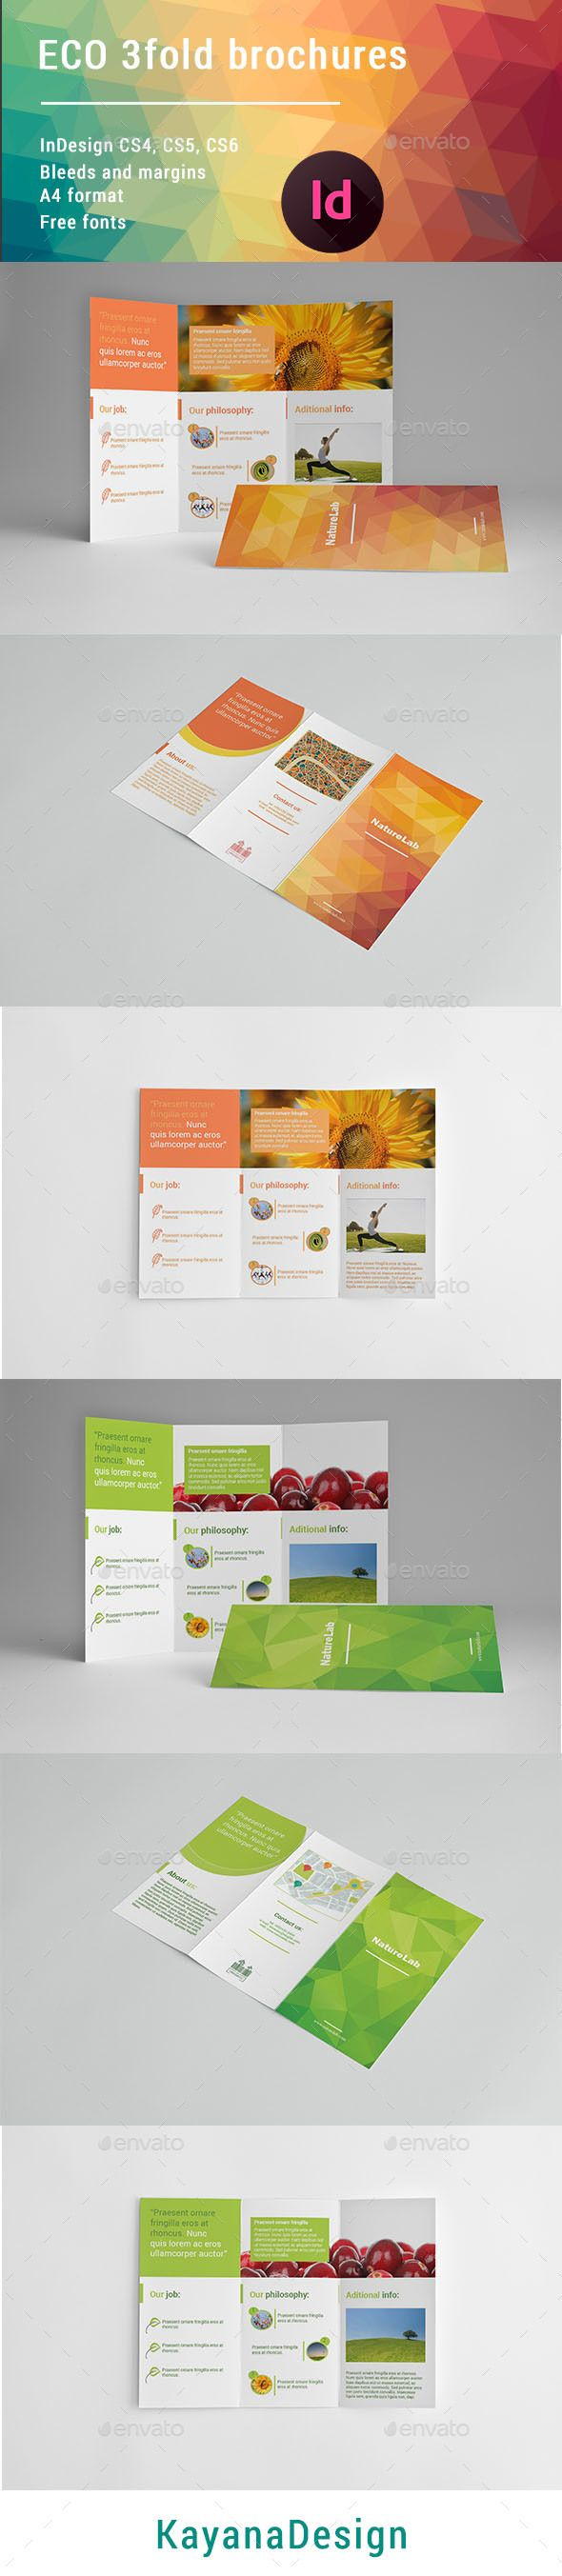 Lovely 1 2 3 Nu Opgaver Kapitel Resume Thick 1 Page Resume Templates Shaped 1 Week Calendar Template 1.5 Button Template Young 10 Best Resume Templates Orange100 Chart Template 25  Best Ideas About 3 Fold Brochure On Pinterest | Tri Fold ..